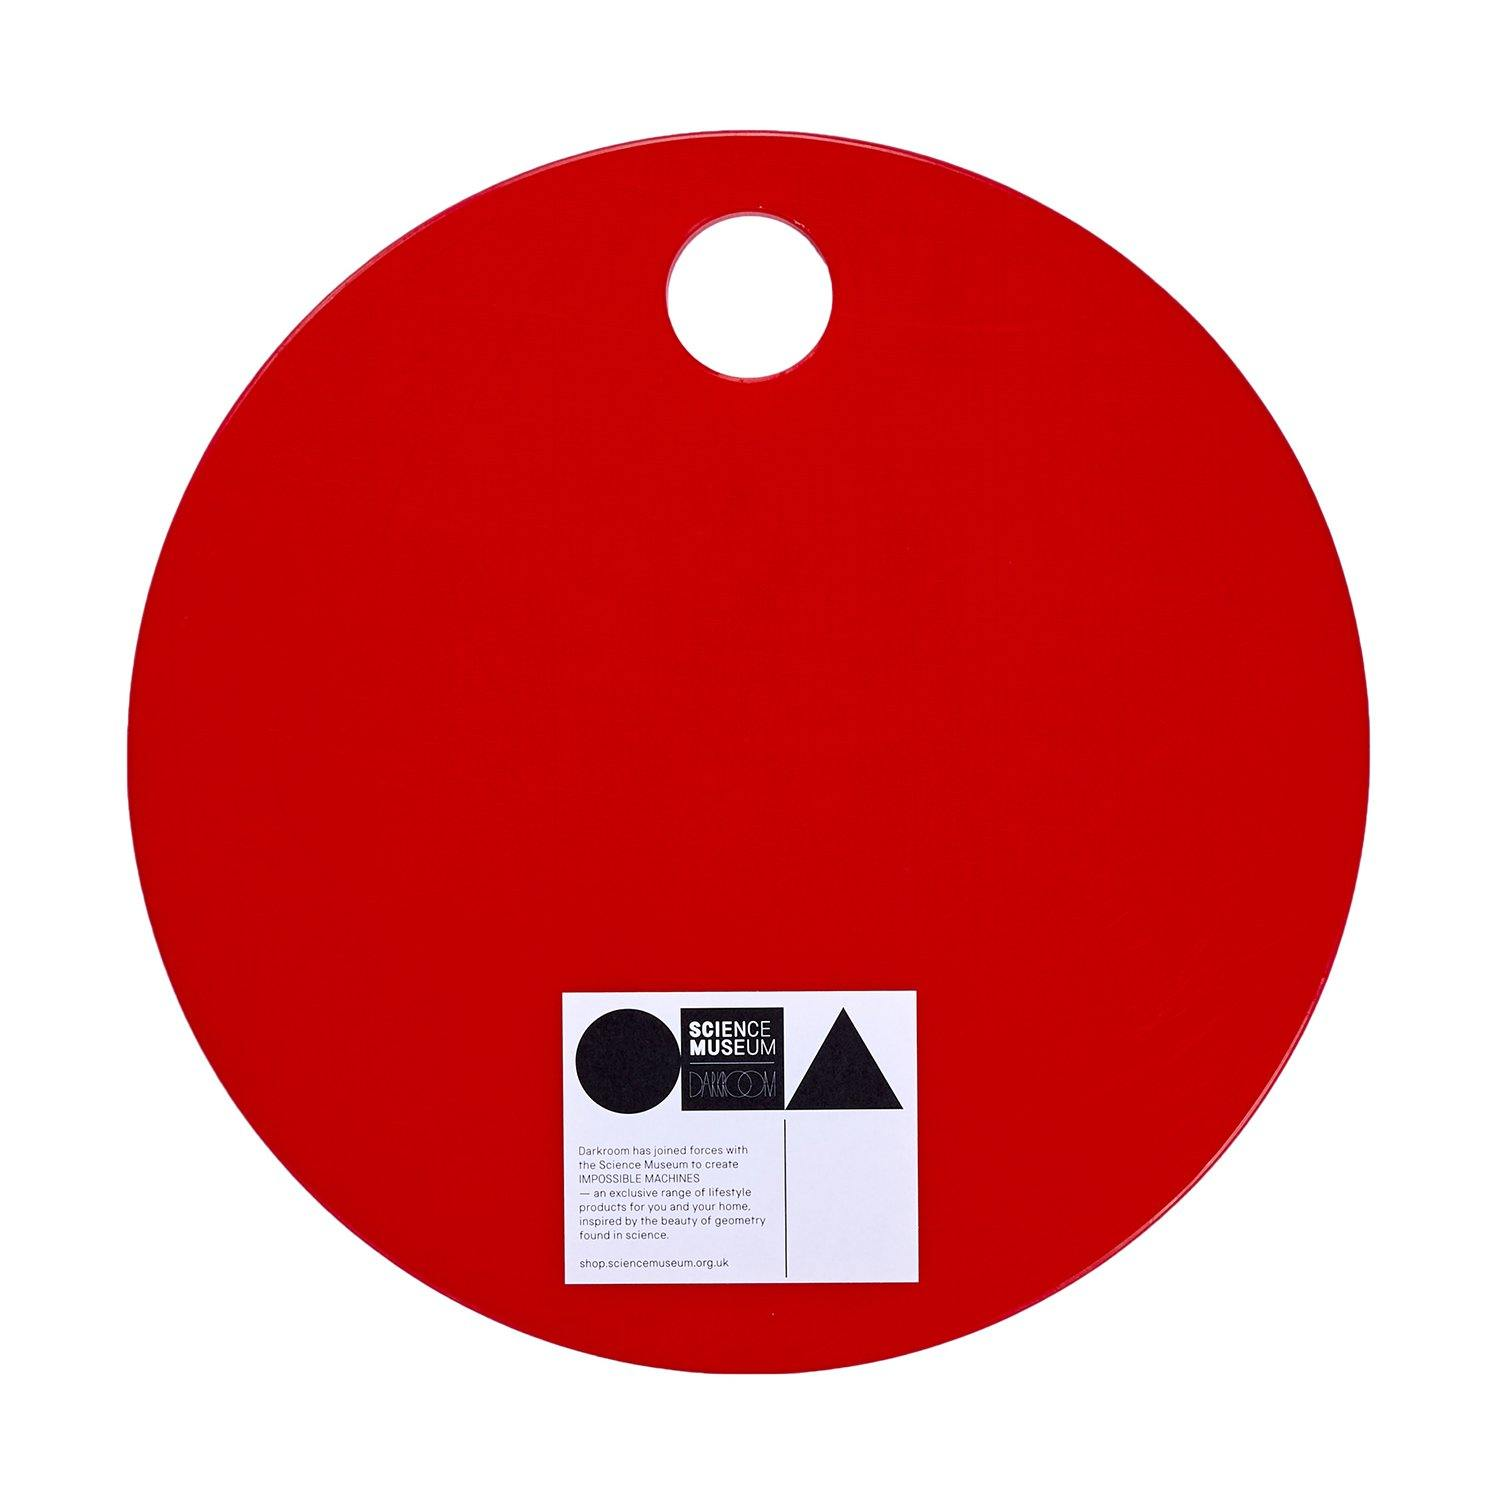 Science Museum Impossible Machines Chopping Board Red 3